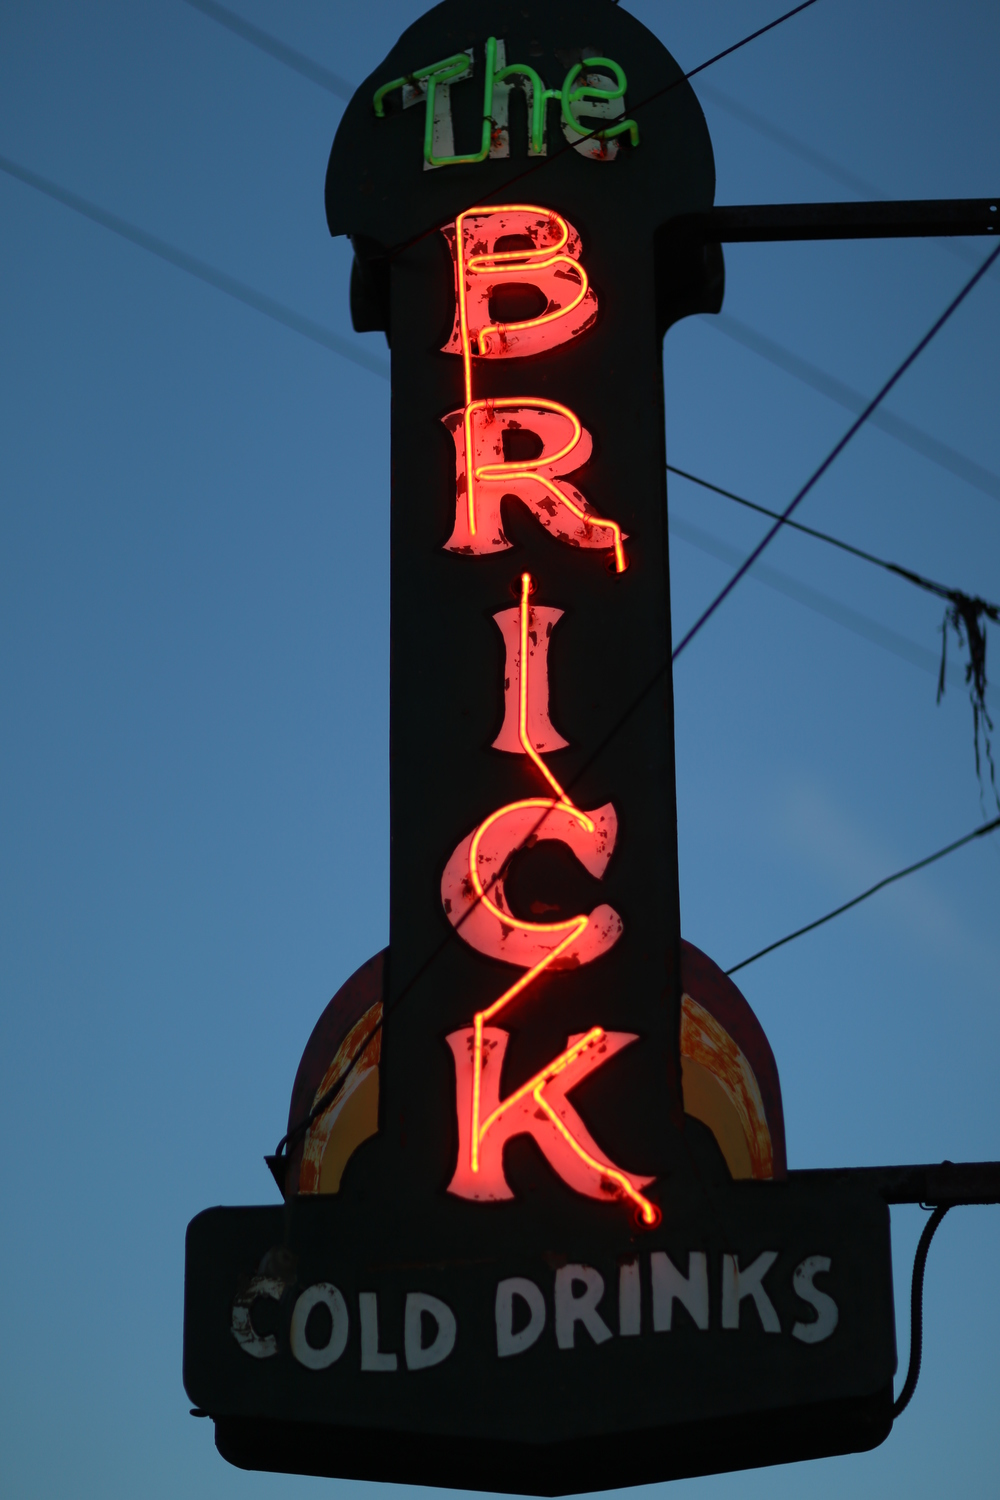 The Brick, Roslyn neon sign